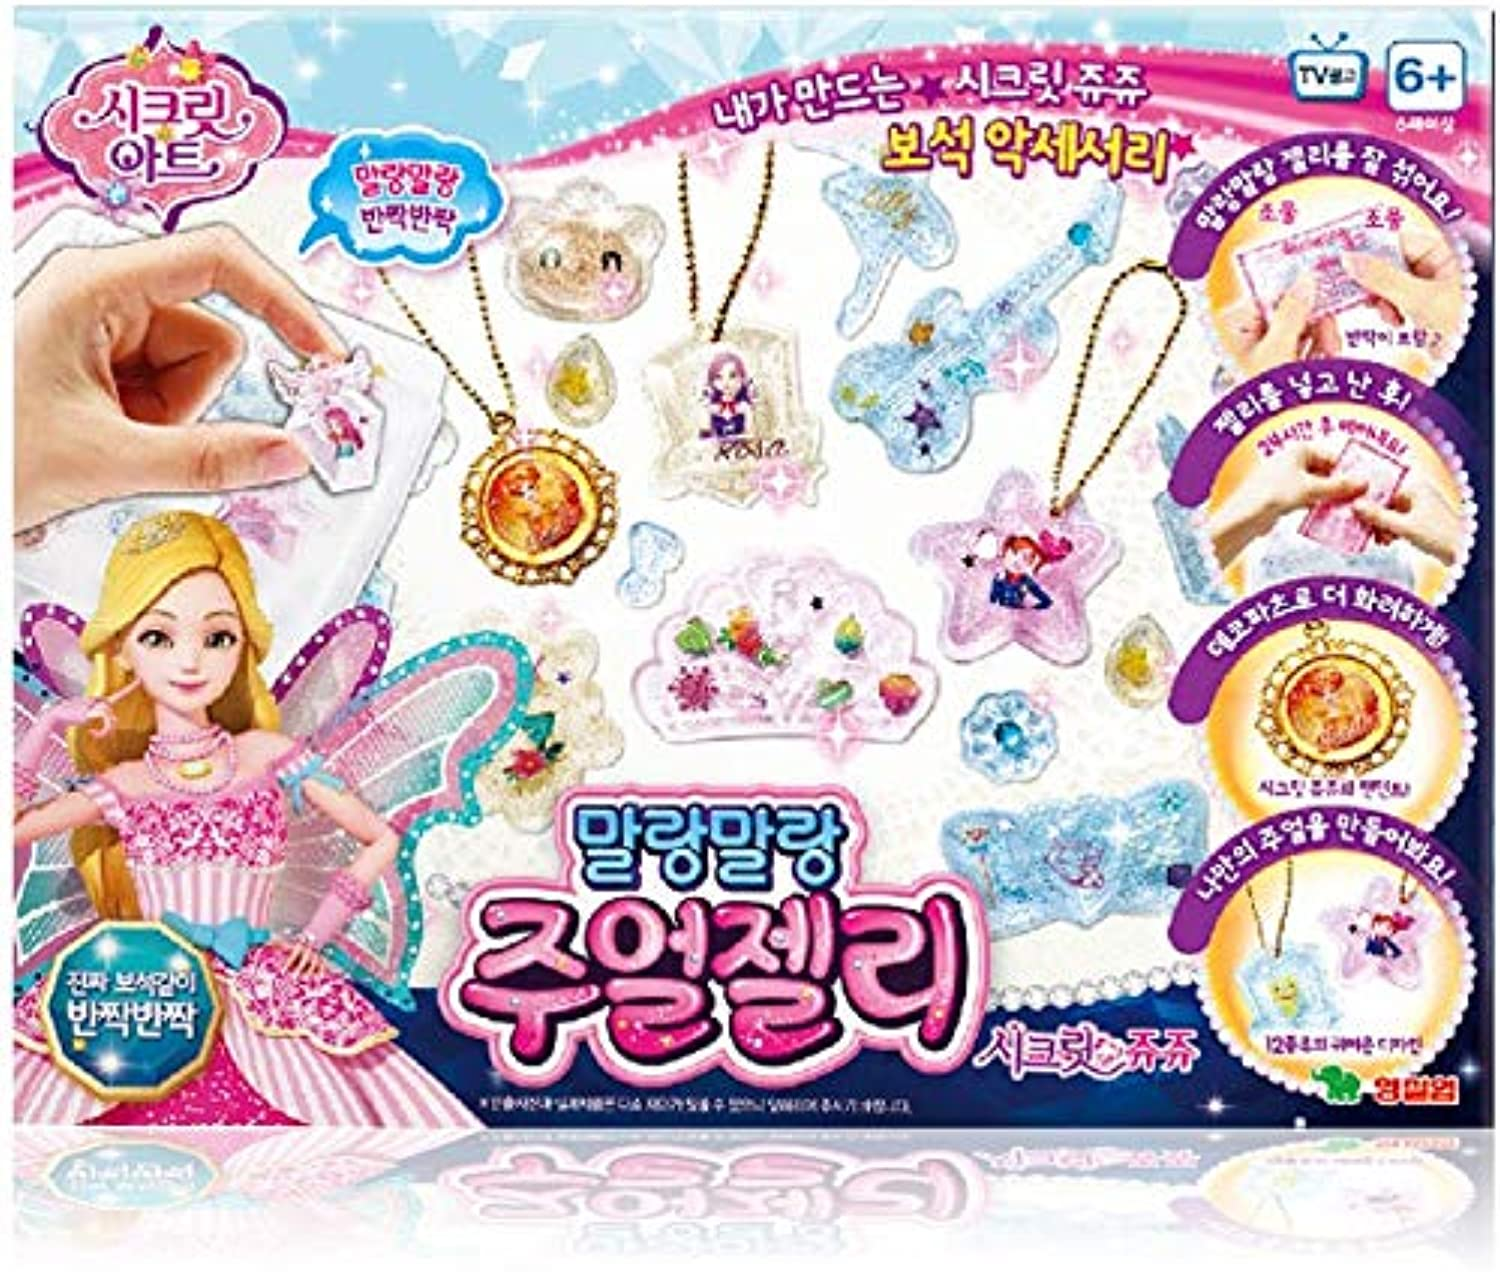 [TOY] N Youngtoys Secret Art Soft Jelly Jewel Kit